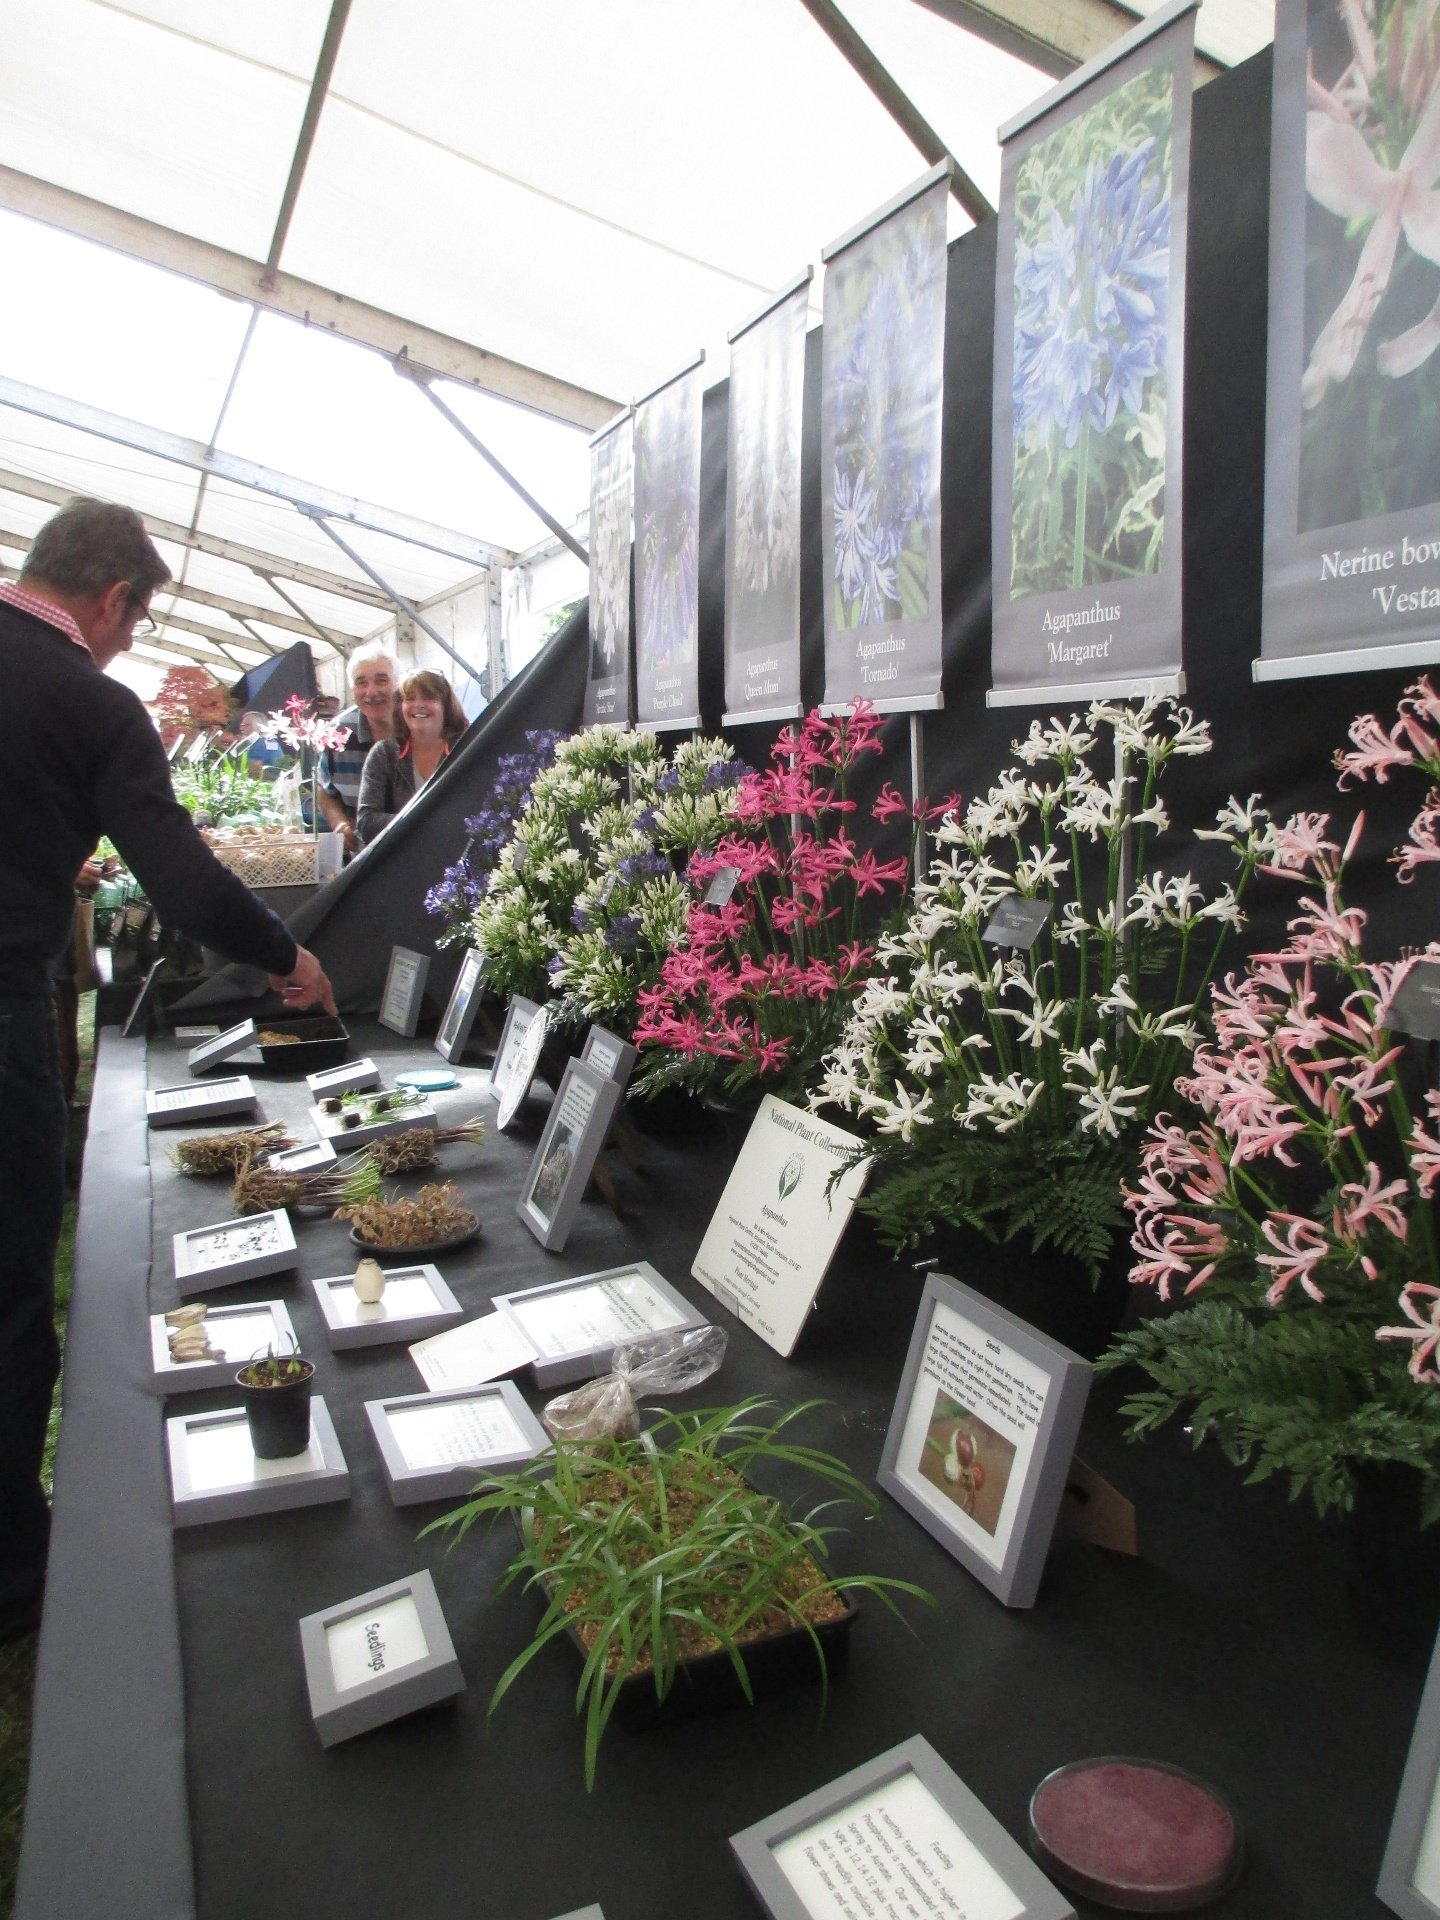 Steve's beautiful display of Nerines and Agapanthus, with examples of different ways of their propagation.